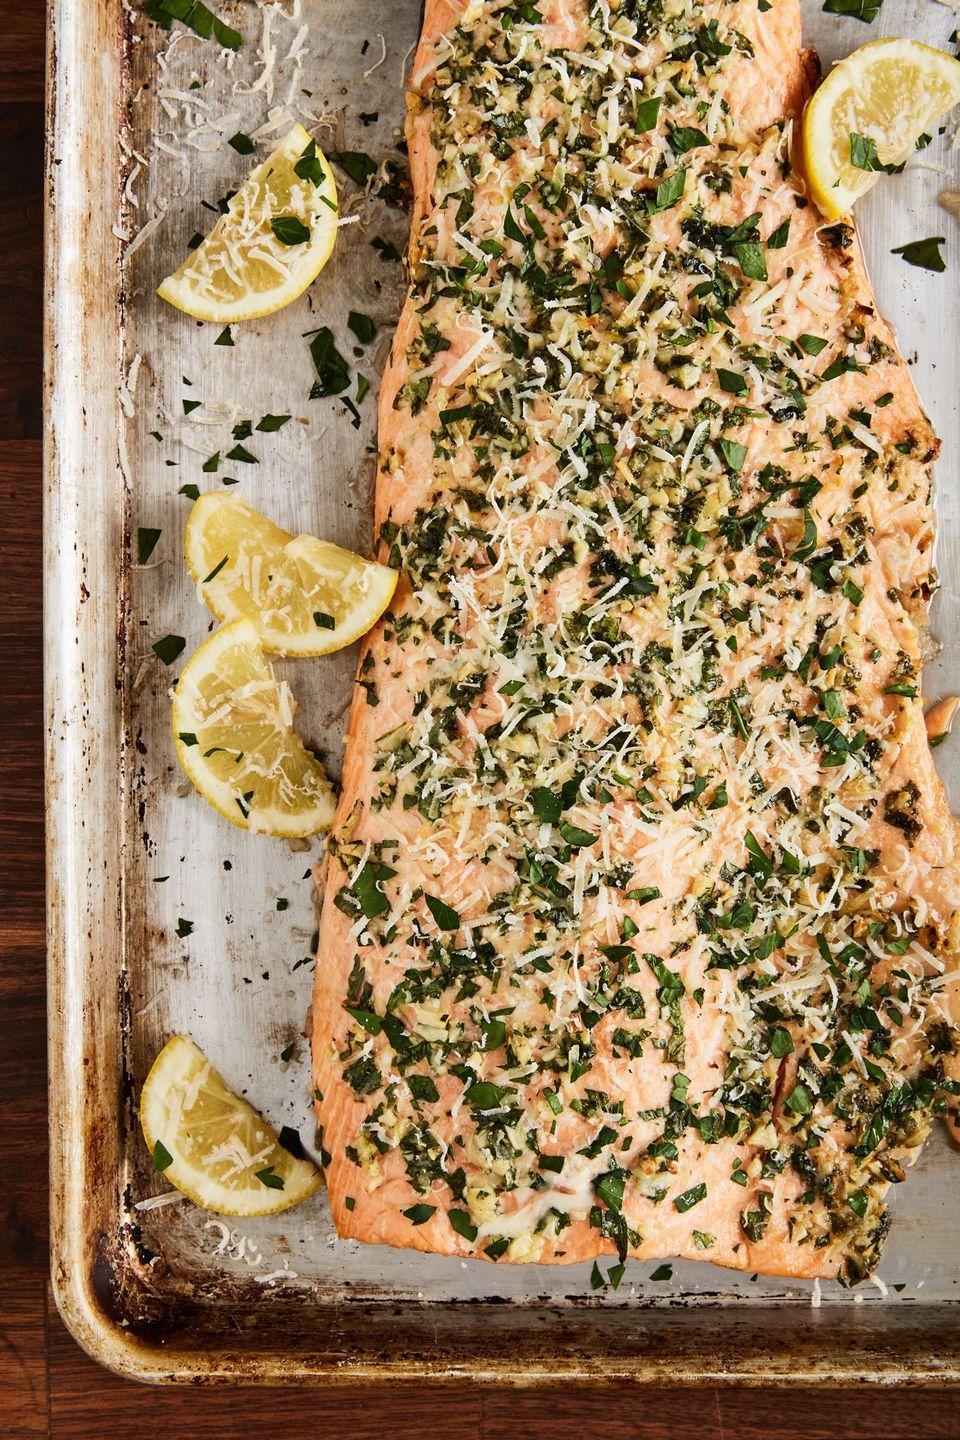 "<p>Herb and Parmesan crusted salmon. What's not to love?</p><p>Get the recipe from <a href=""https://www.delish.com/cooking/recipe-ideas/recipes/a50778/garlic-parmesan-salmon-recipe/"" rel=""nofollow noopener"" target=""_blank"" data-ylk=""slk:Delish"" class=""link rapid-noclick-resp"">Delish</a>. </p>"